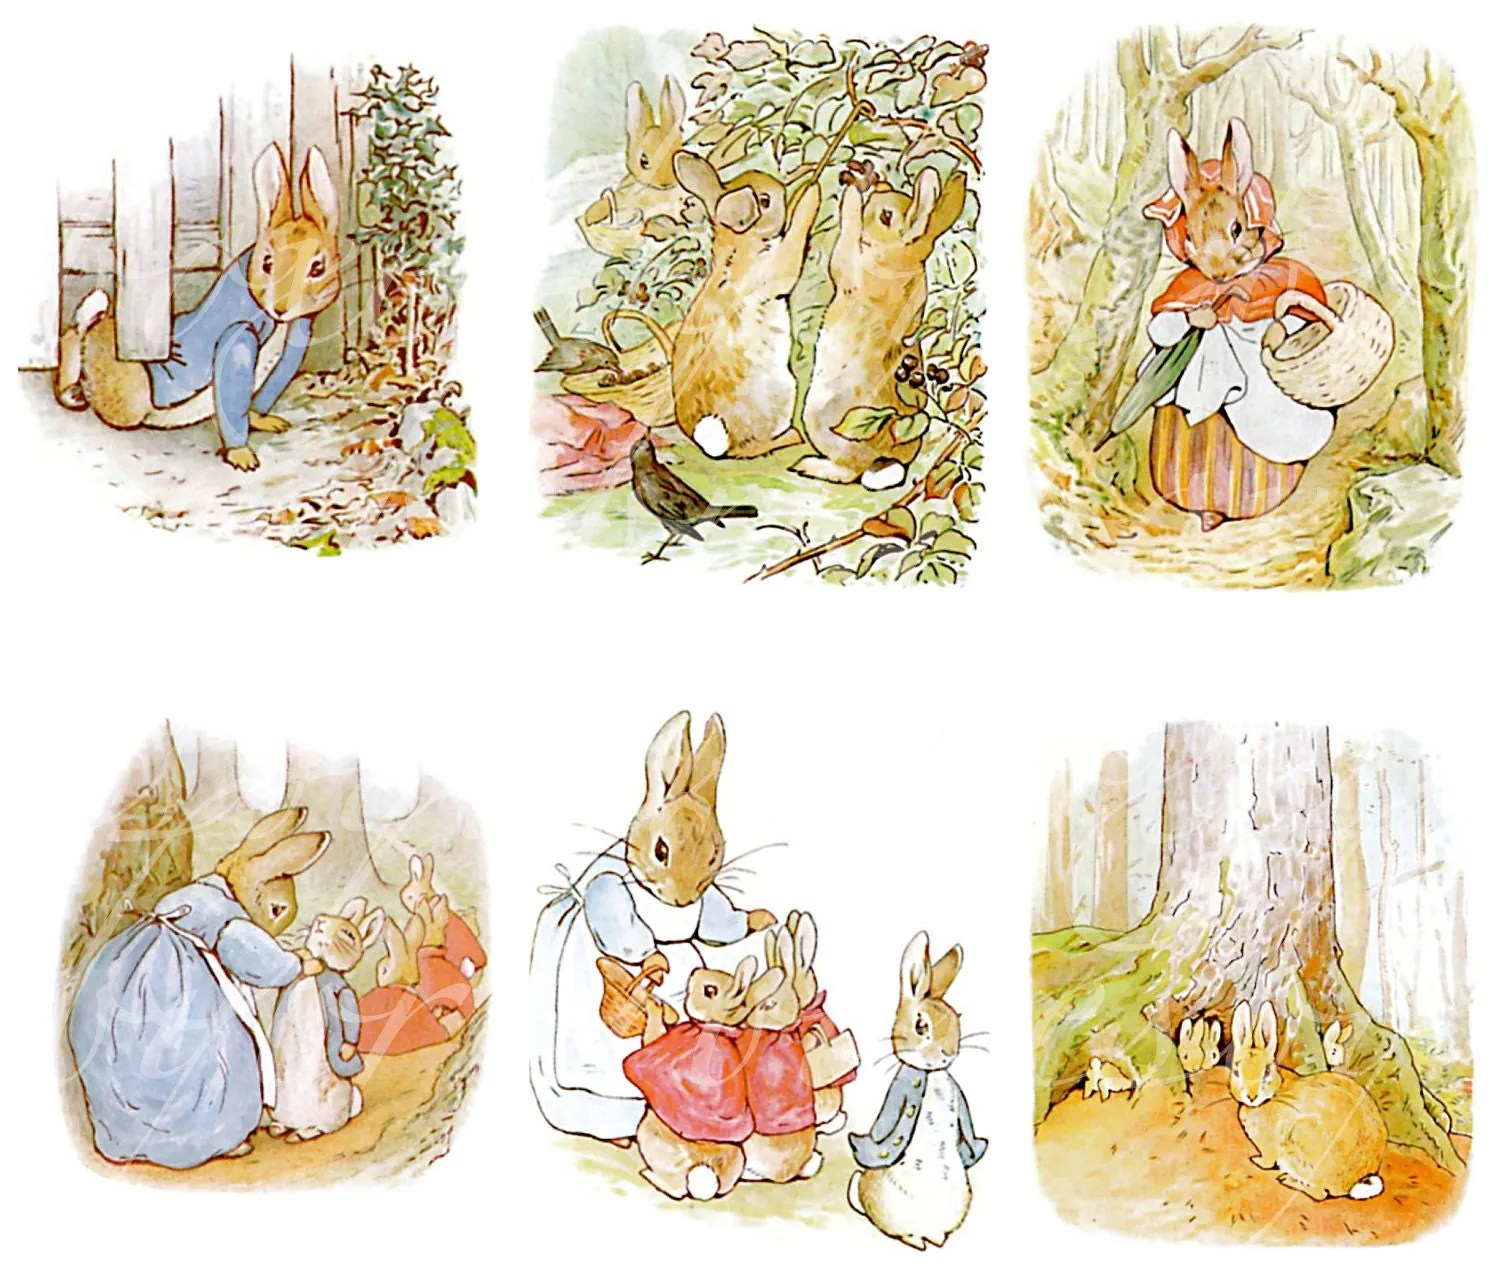 Instant Download Of 24 Peter Rabbit Images From Tale Of